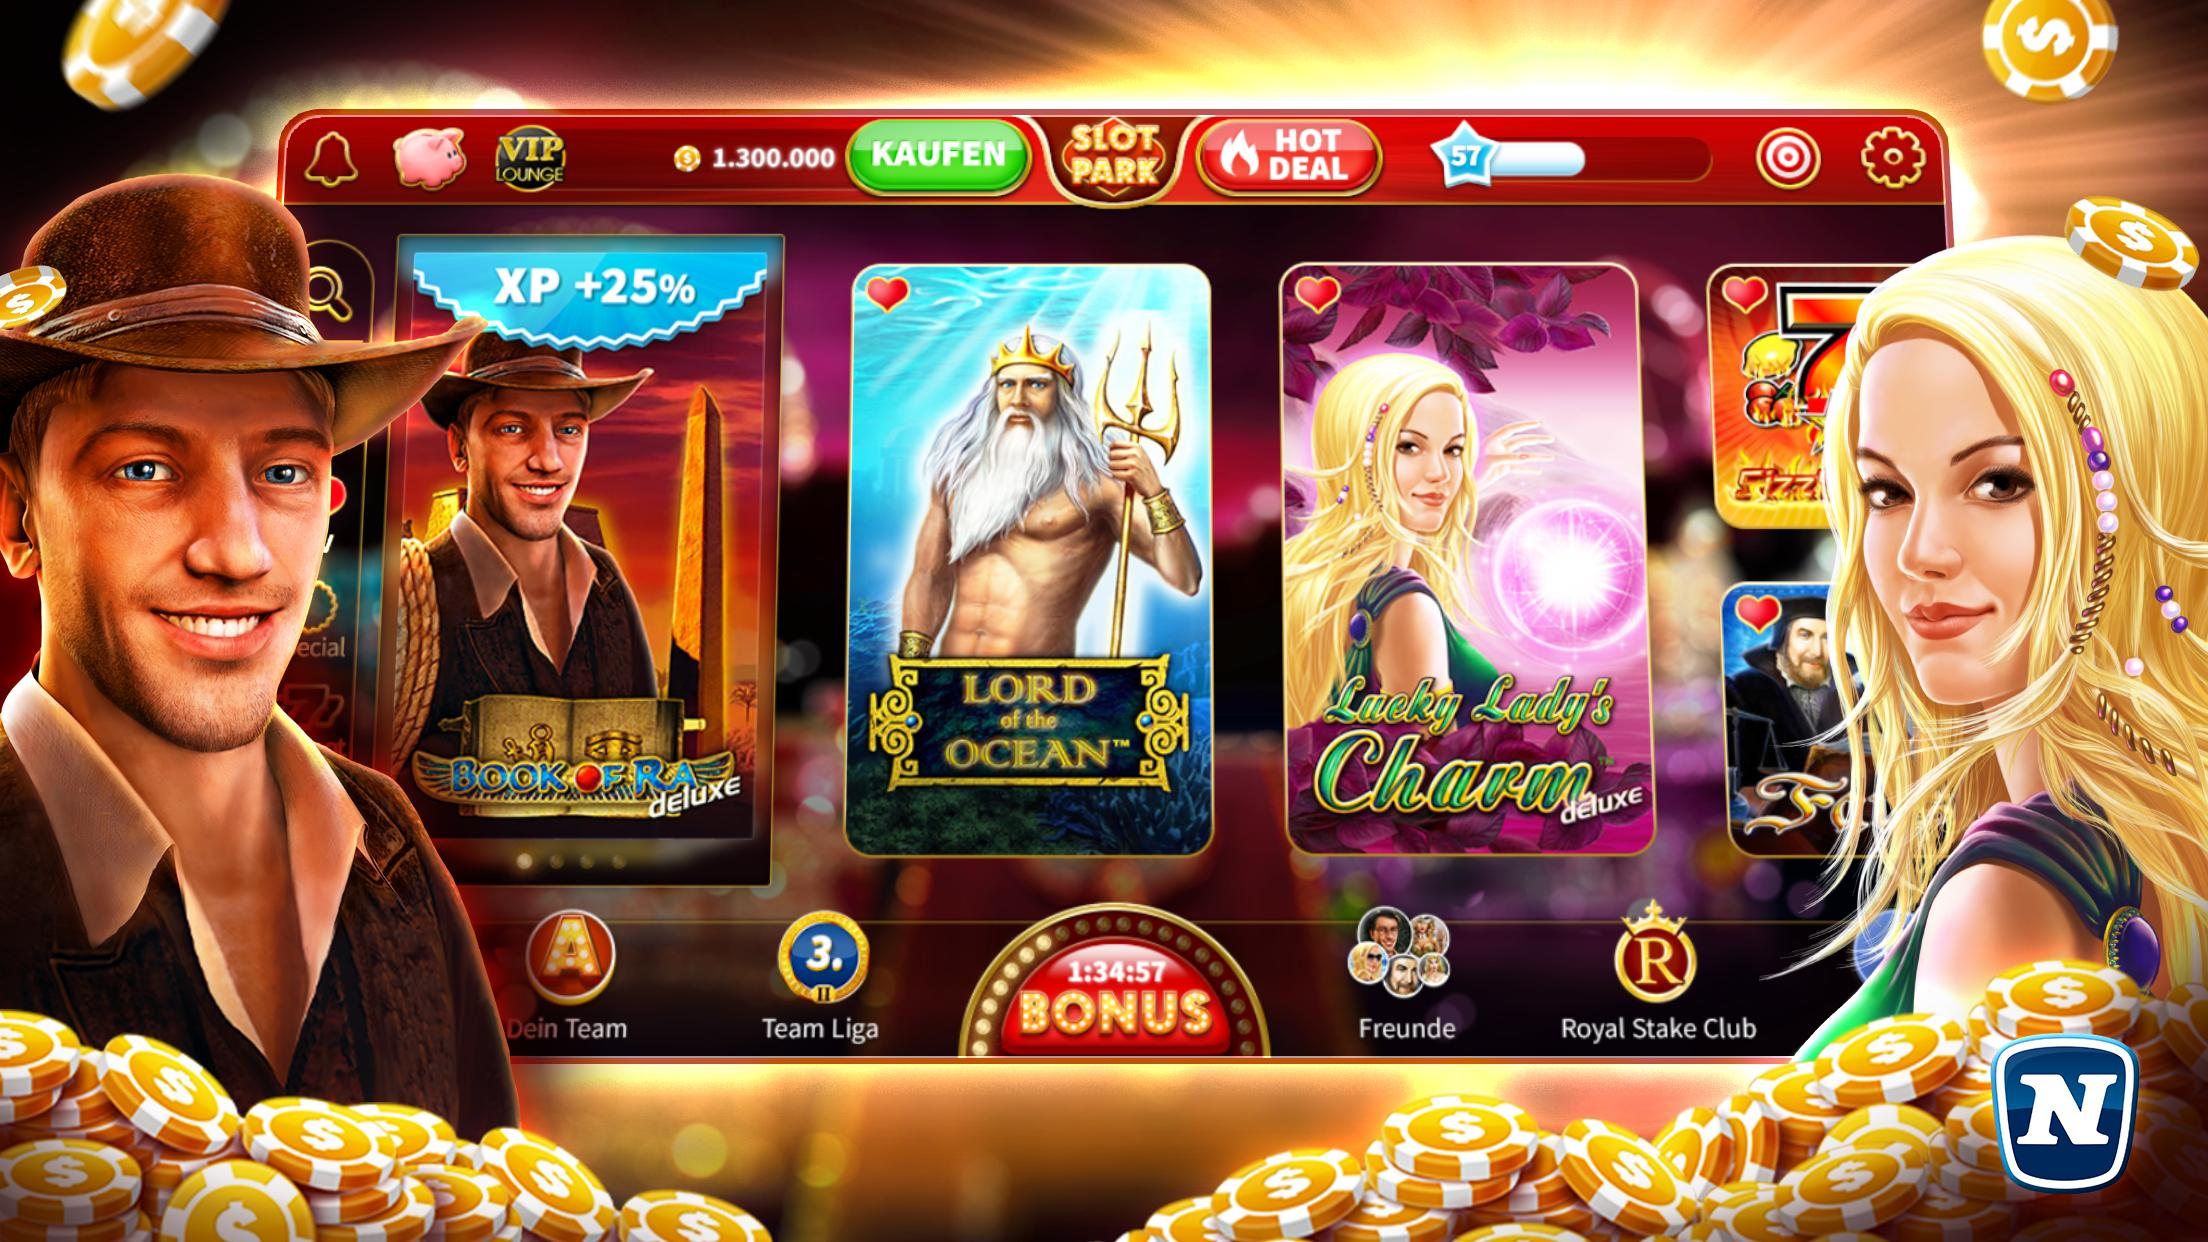 Slotpark Online Casino Games & Free Slot Machine 3.21.1 Screenshot 9